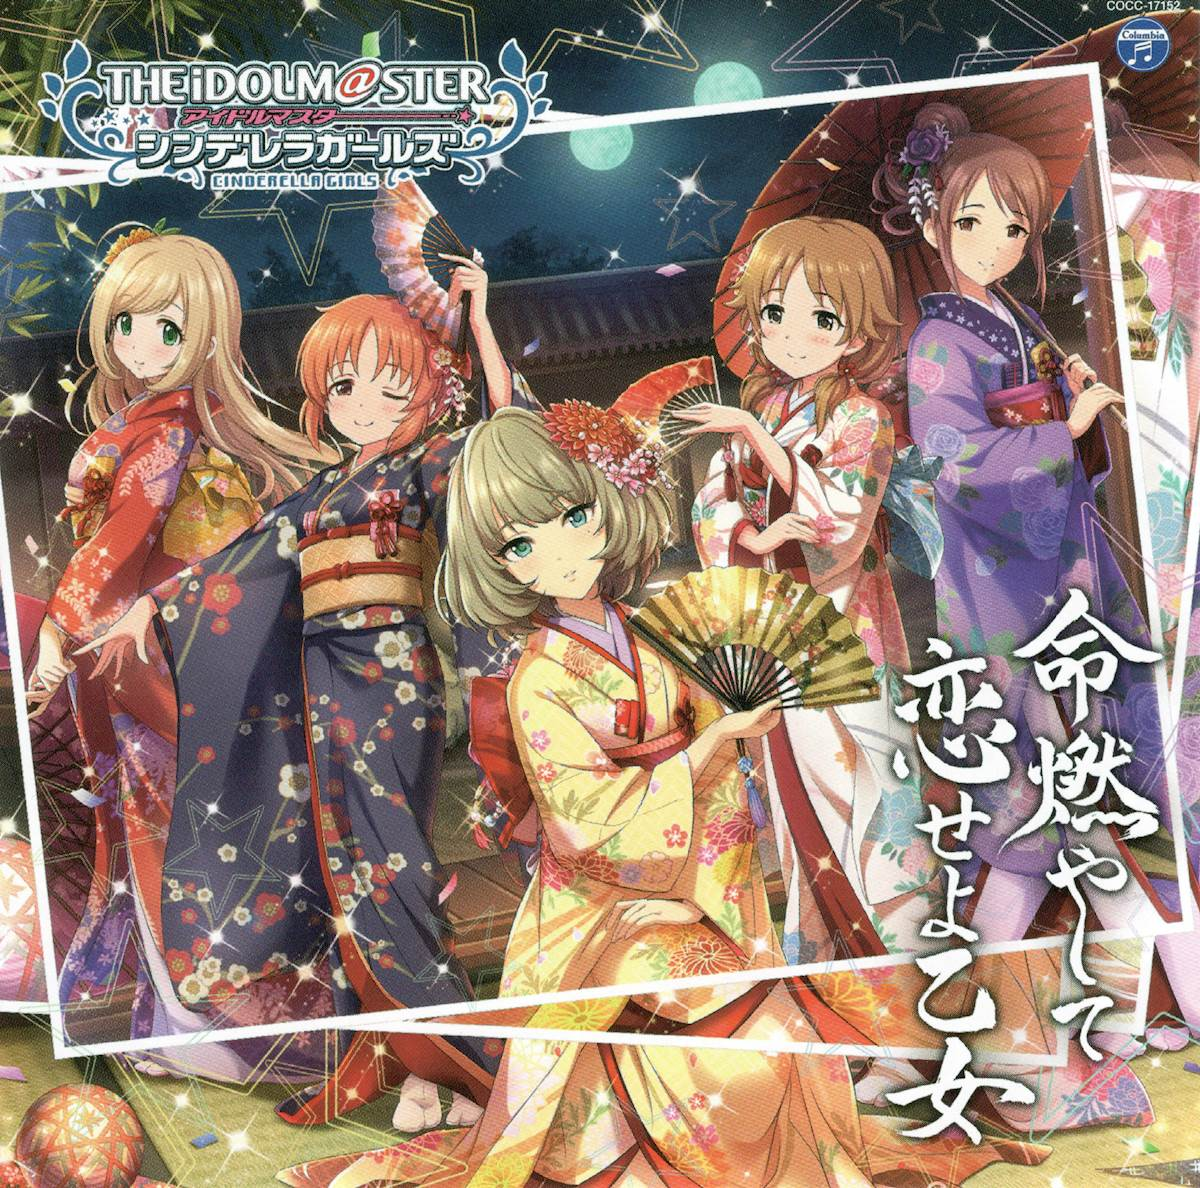 [自购][170809] THE IDOLM@STER CINDERELLA GIRLS STARLIGHT MASTER 12 命燃やして恋せよ乙女 (320k+FLAC)